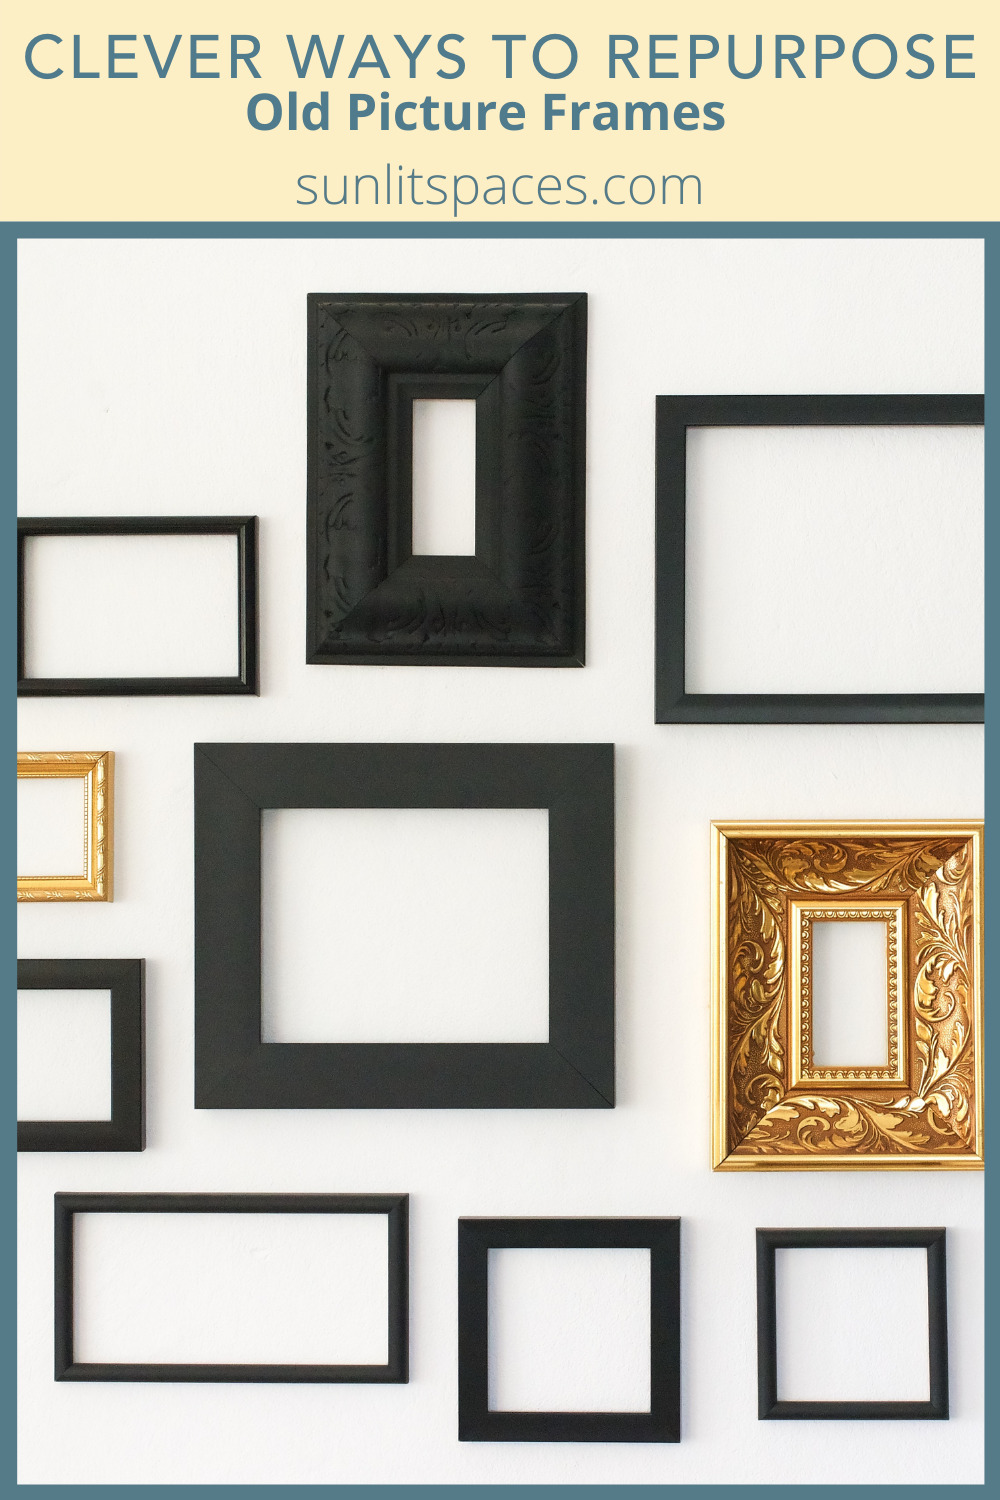 Sunlitspaces.com has the ultimate list of DIY and repurposing projects. Find loads of clever ideas for reusing old objects and materials to save yourself money, time, and resources. Check out these awesome uses for old picture frames you have lying around.